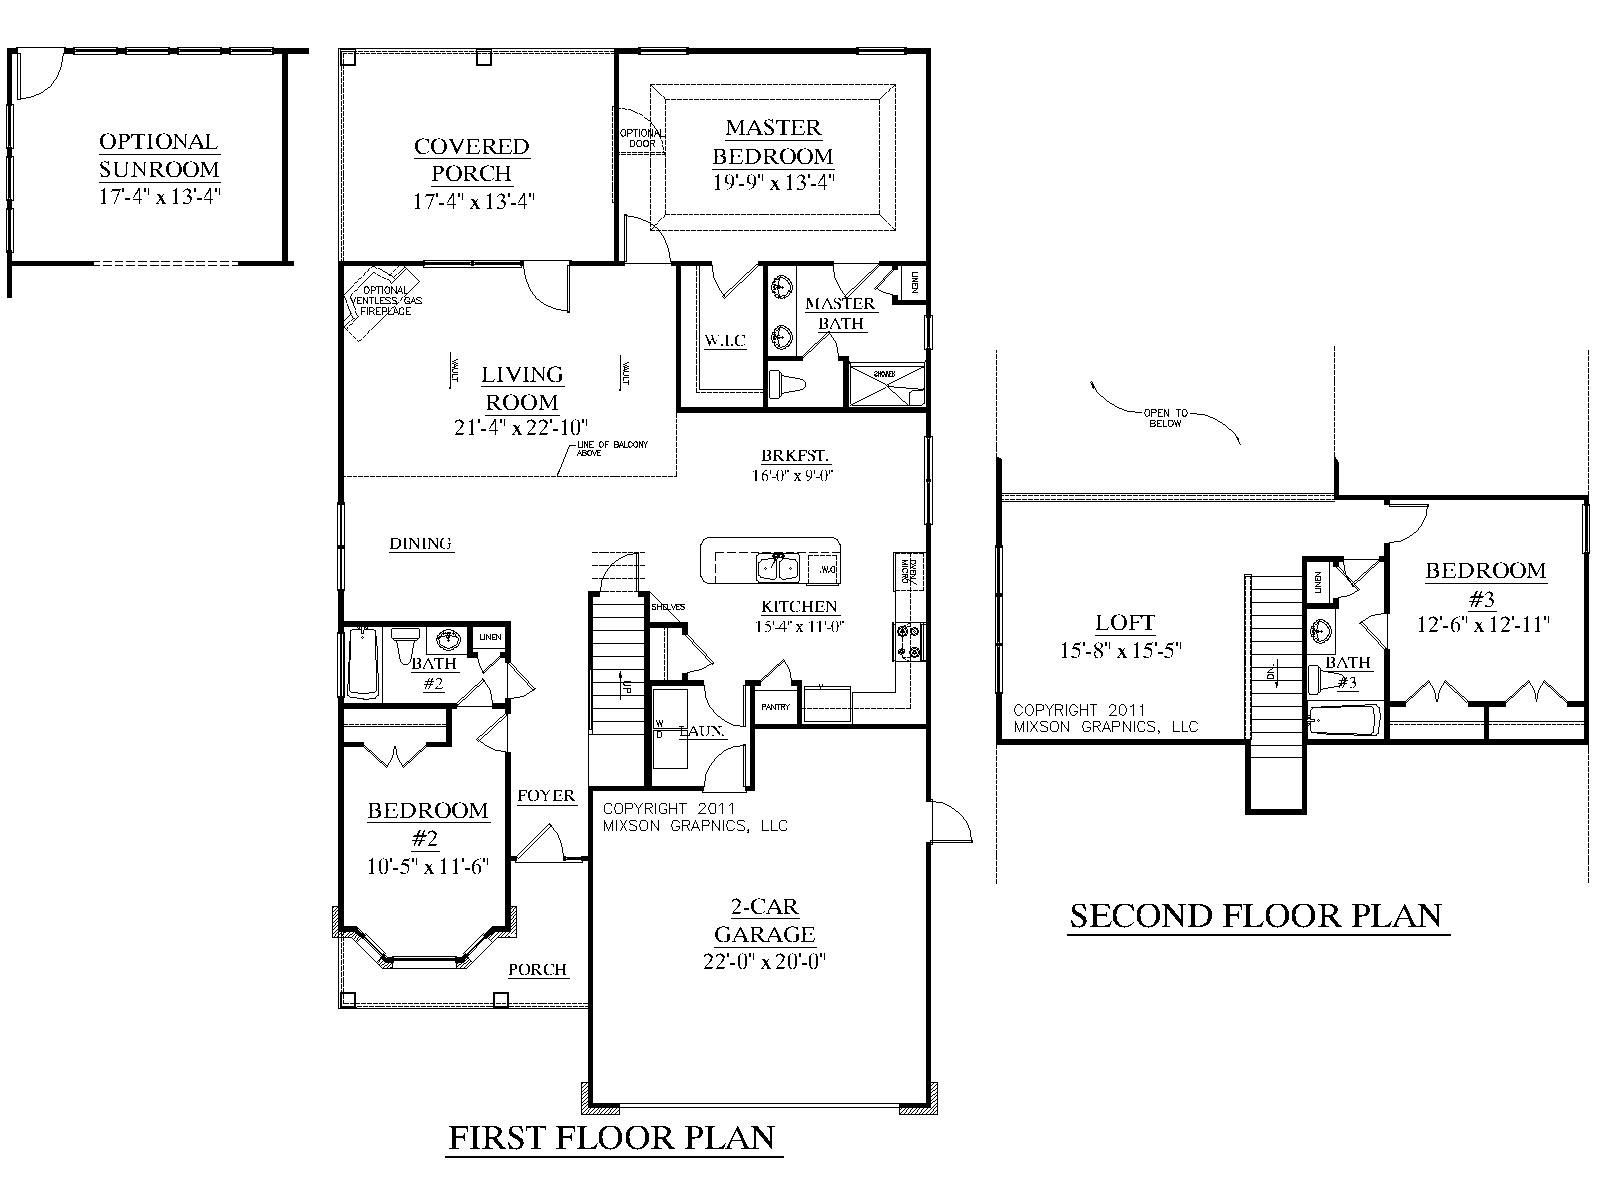 House Plan 2219 Dawson Floor Plan Traditional 1 1 2 Story House Plan With 3 Bedrooms And 3